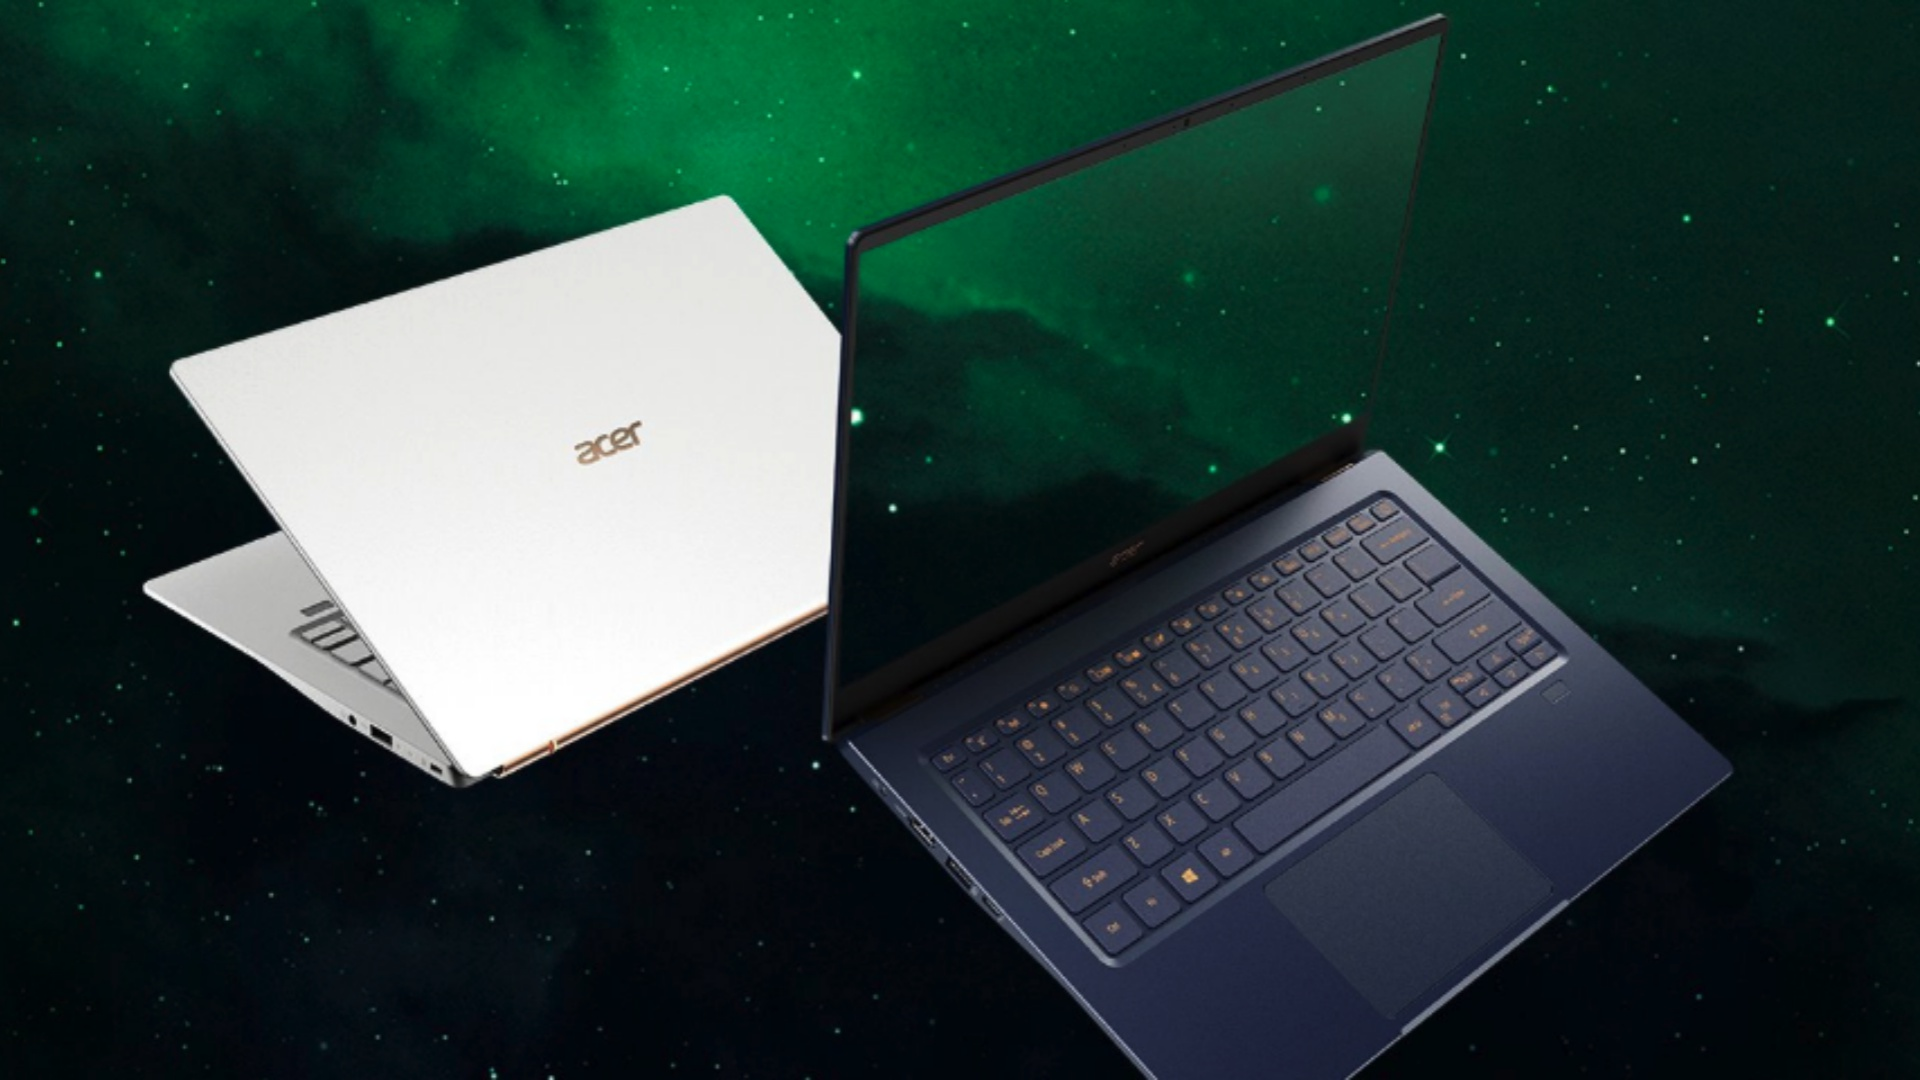 Acer Announces New Swift 5 Maintains the World's Lightest 14-inch Notebook